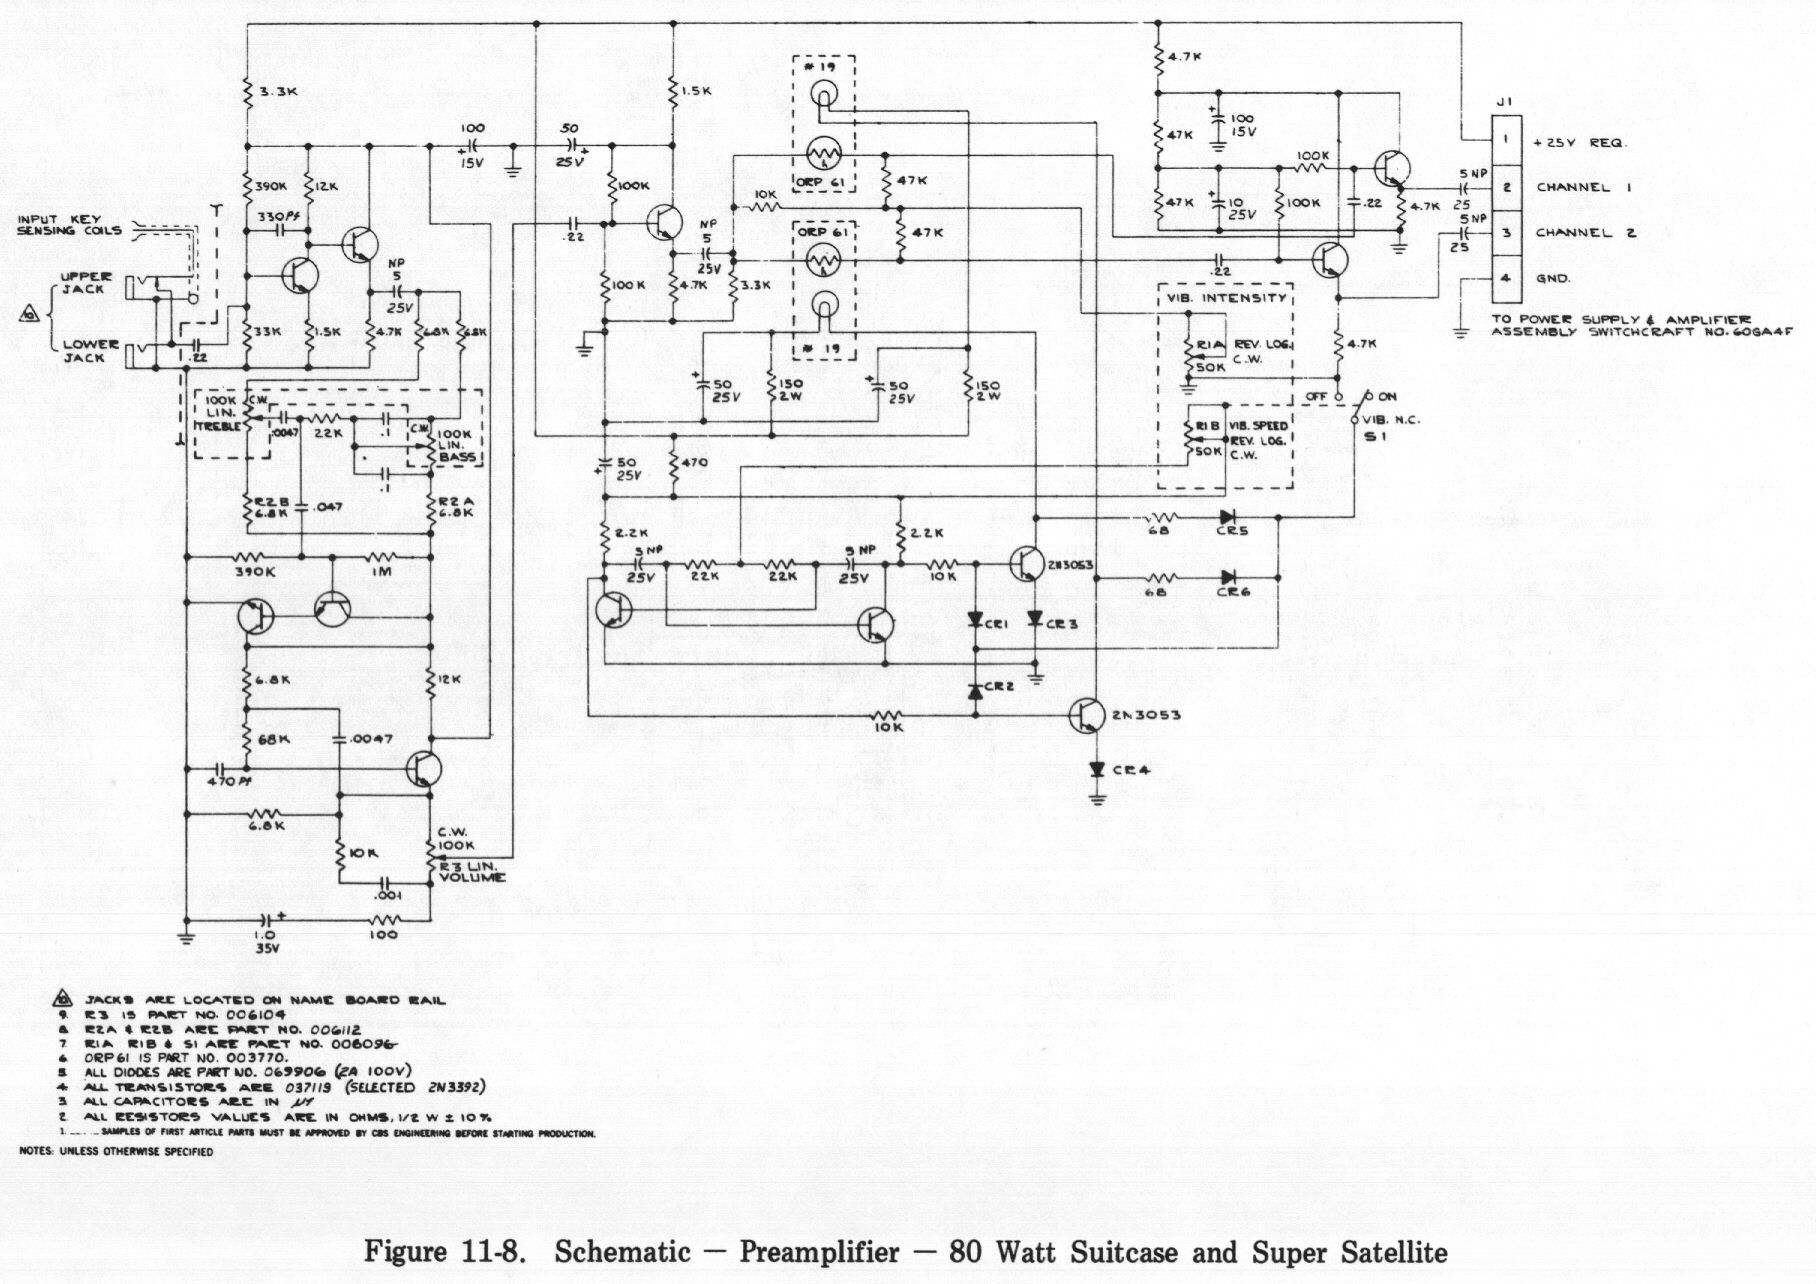 Fender Rhodes 5 Pin Pre amp Schematics | All Rhodes lead somewhere ...